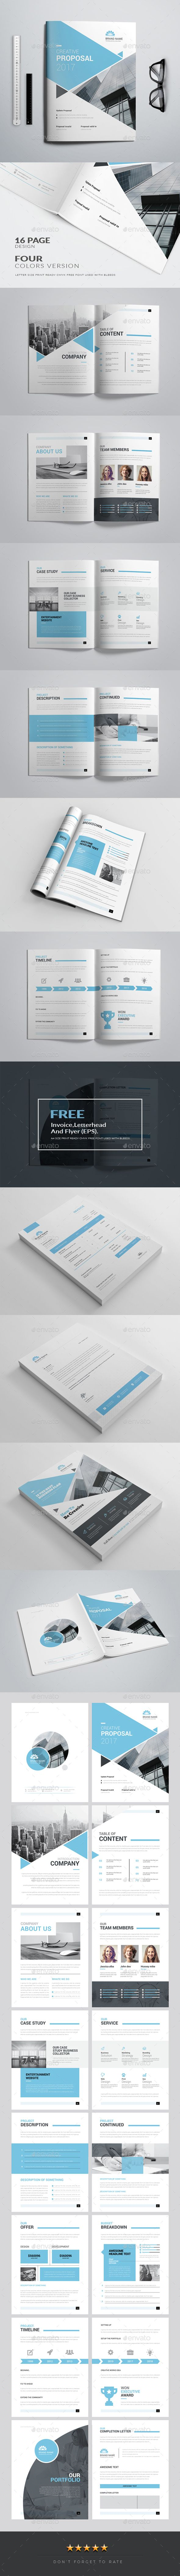 Proposal 120 best CORPORATE PROPOSAL images on